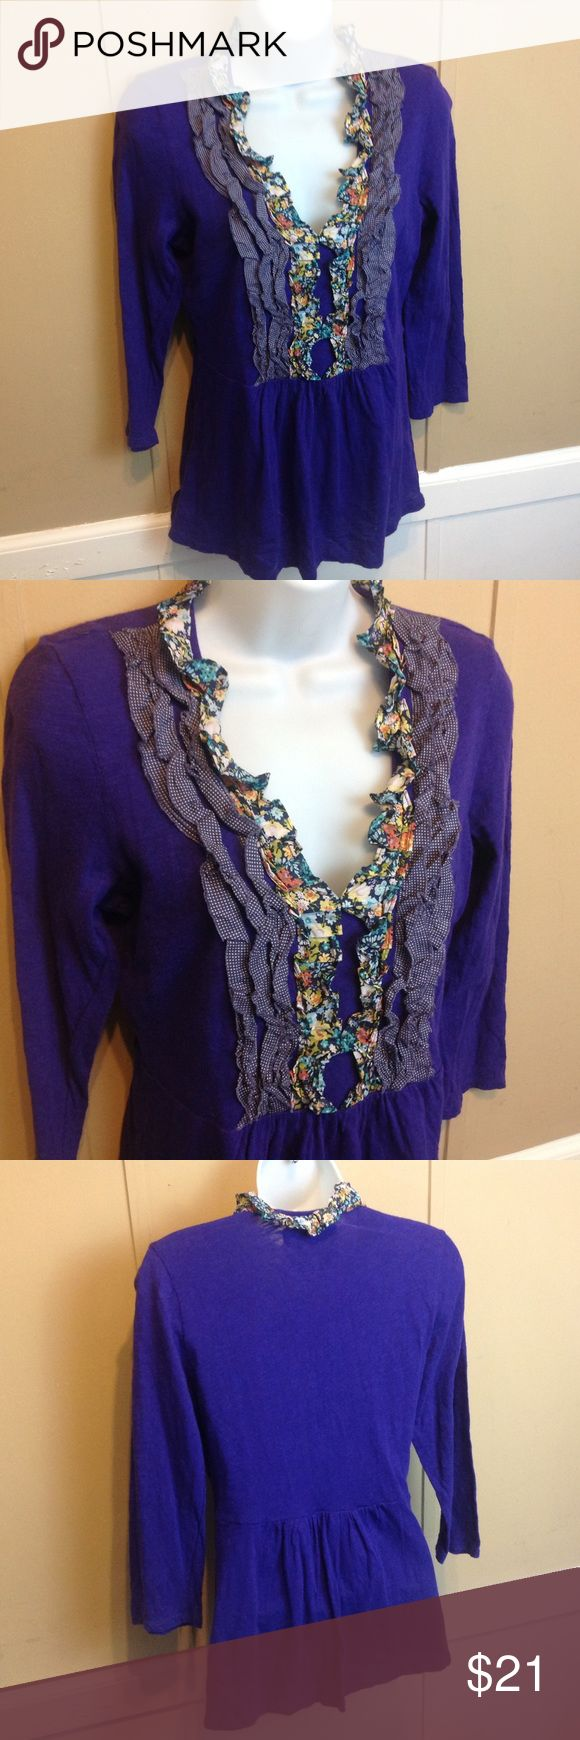 """Deletta Anthropologie Purple V-Neck Blouse Maker: Deletta ♥ Material: Cotton ♥ Color: Purple ♥ Measured Size: Pit to pit- 18"""" Pit to cuff- 12"""" Shoulder to waist- 25""""  ♥ Tag Size: Medium ♥ Actual Size: Medium  PLEASE CHECK YOUR ACTUAL MEASUREMENTS TO MAKE SURE IT IS THE RIGHT SIZE! THANKS! ♥ Condition: Great ♥ Item #: (office use only) E    Follow us on Instagram and facebook for coupon codes!  INSTAGRAM-thehausofvintage1984 Facebook- intergalactic haus of vintage 1984 or @hausofvintage1984…"""